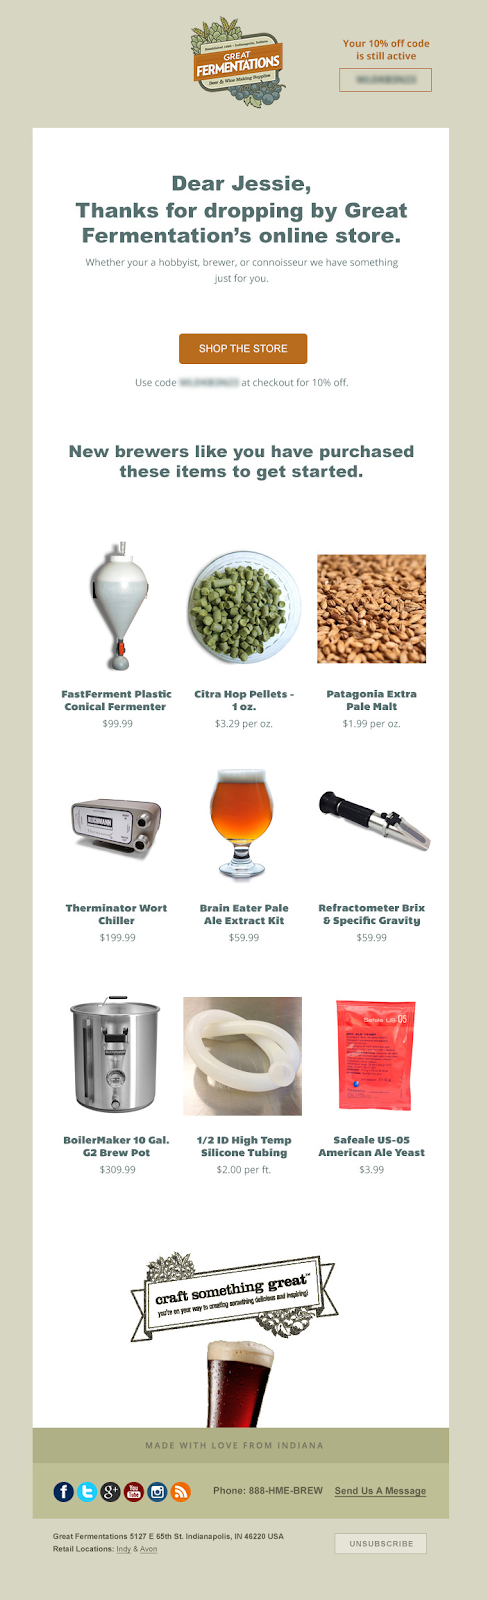 promoted relevant products - great fermentations email